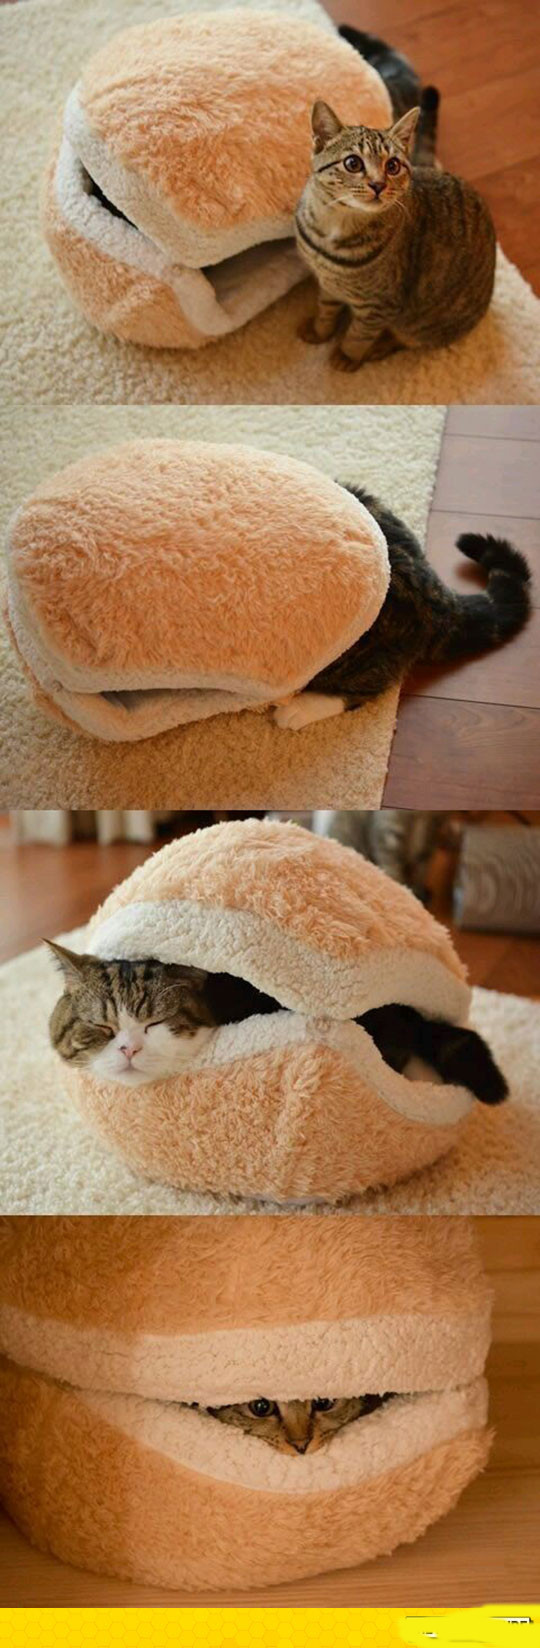 funny-cute-cat-burger-bed